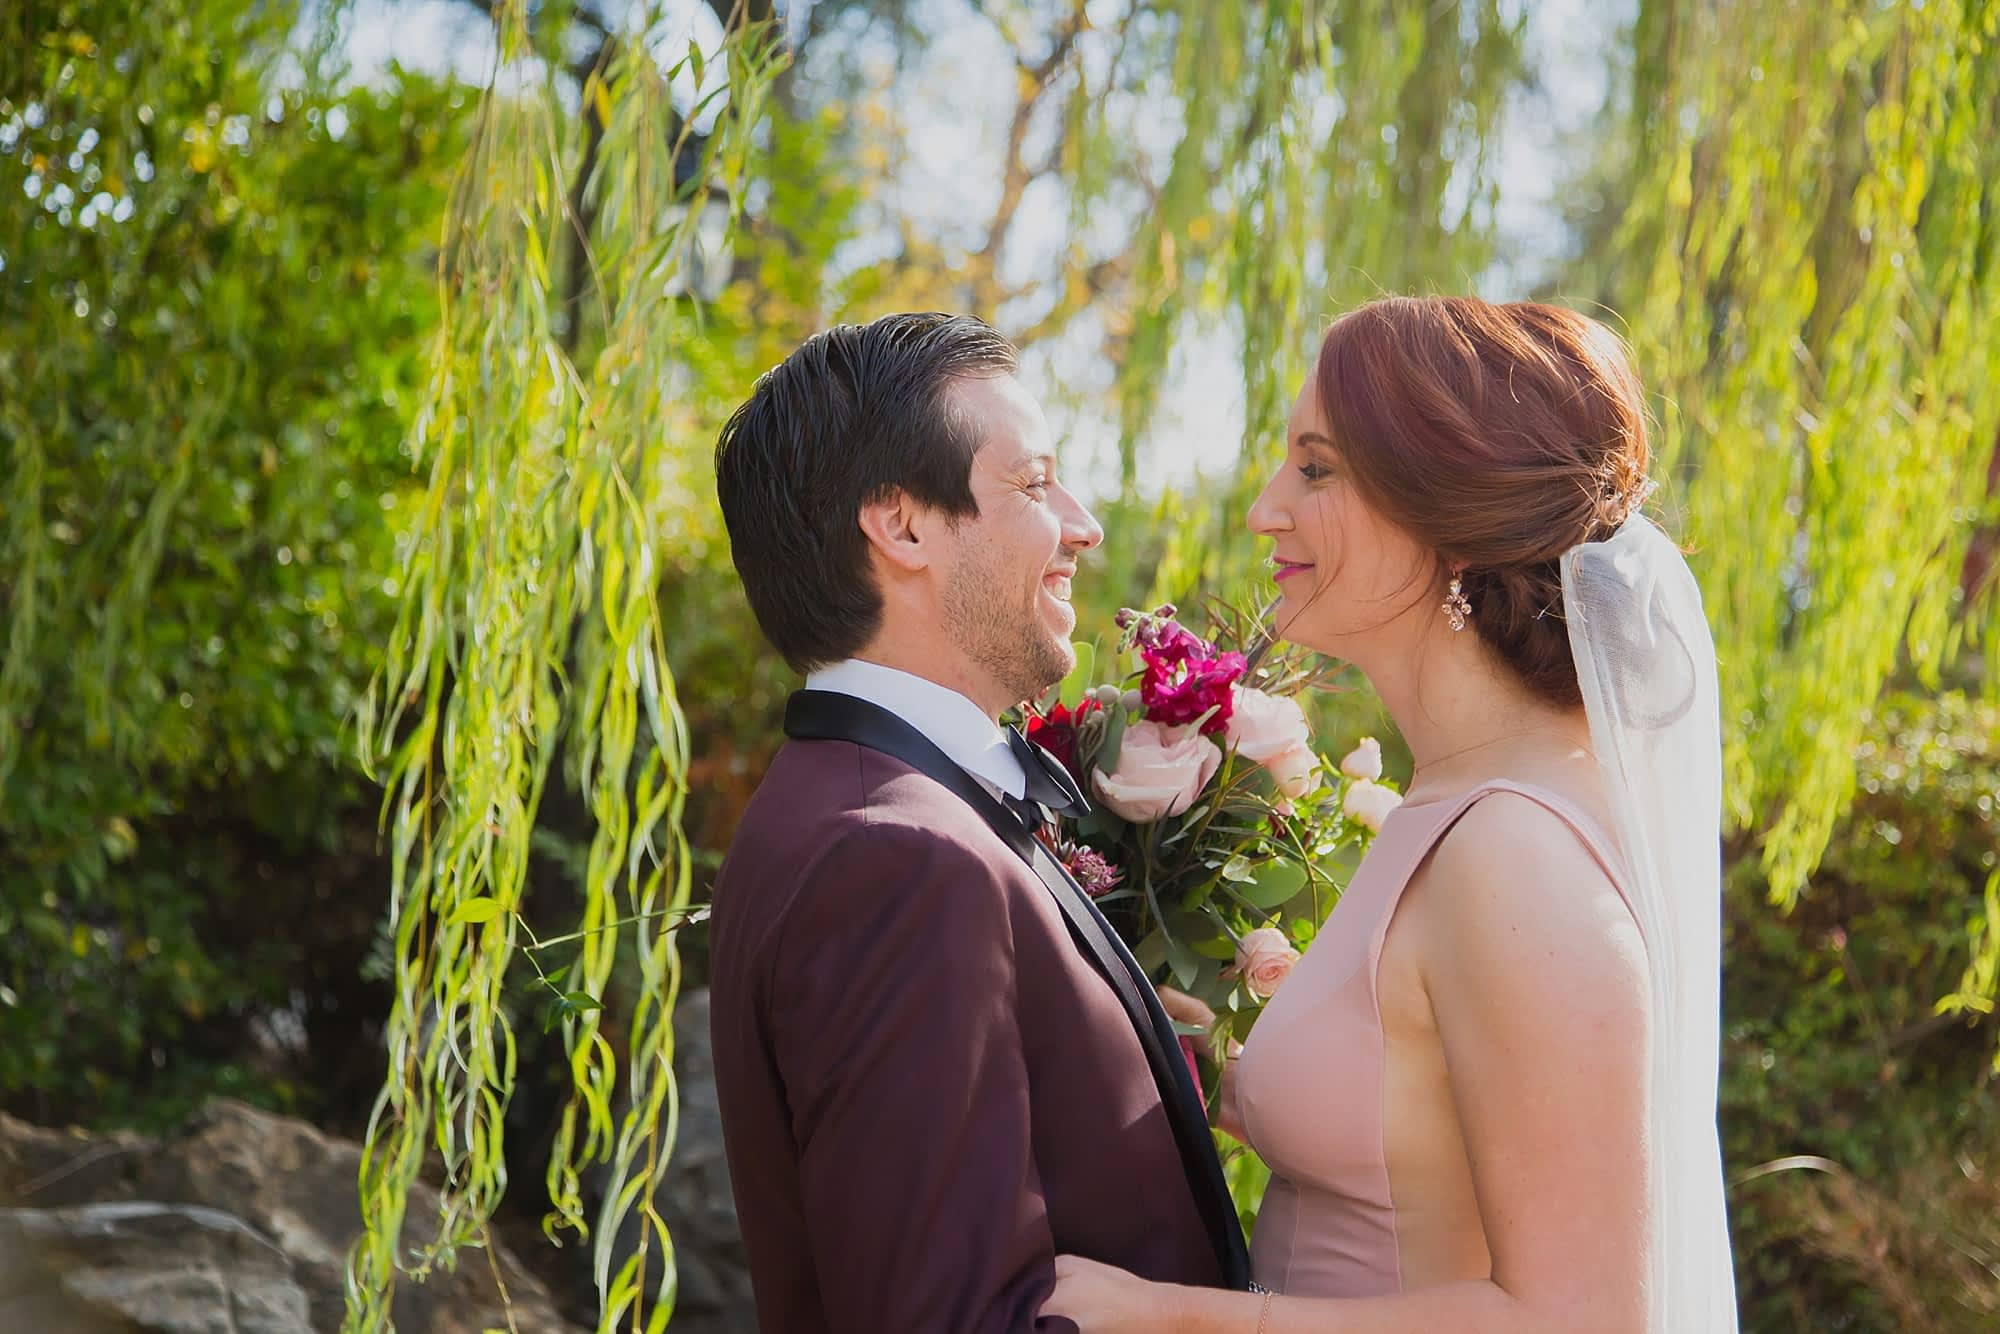 The bride and groom smile at each other while standing under a willow tree.